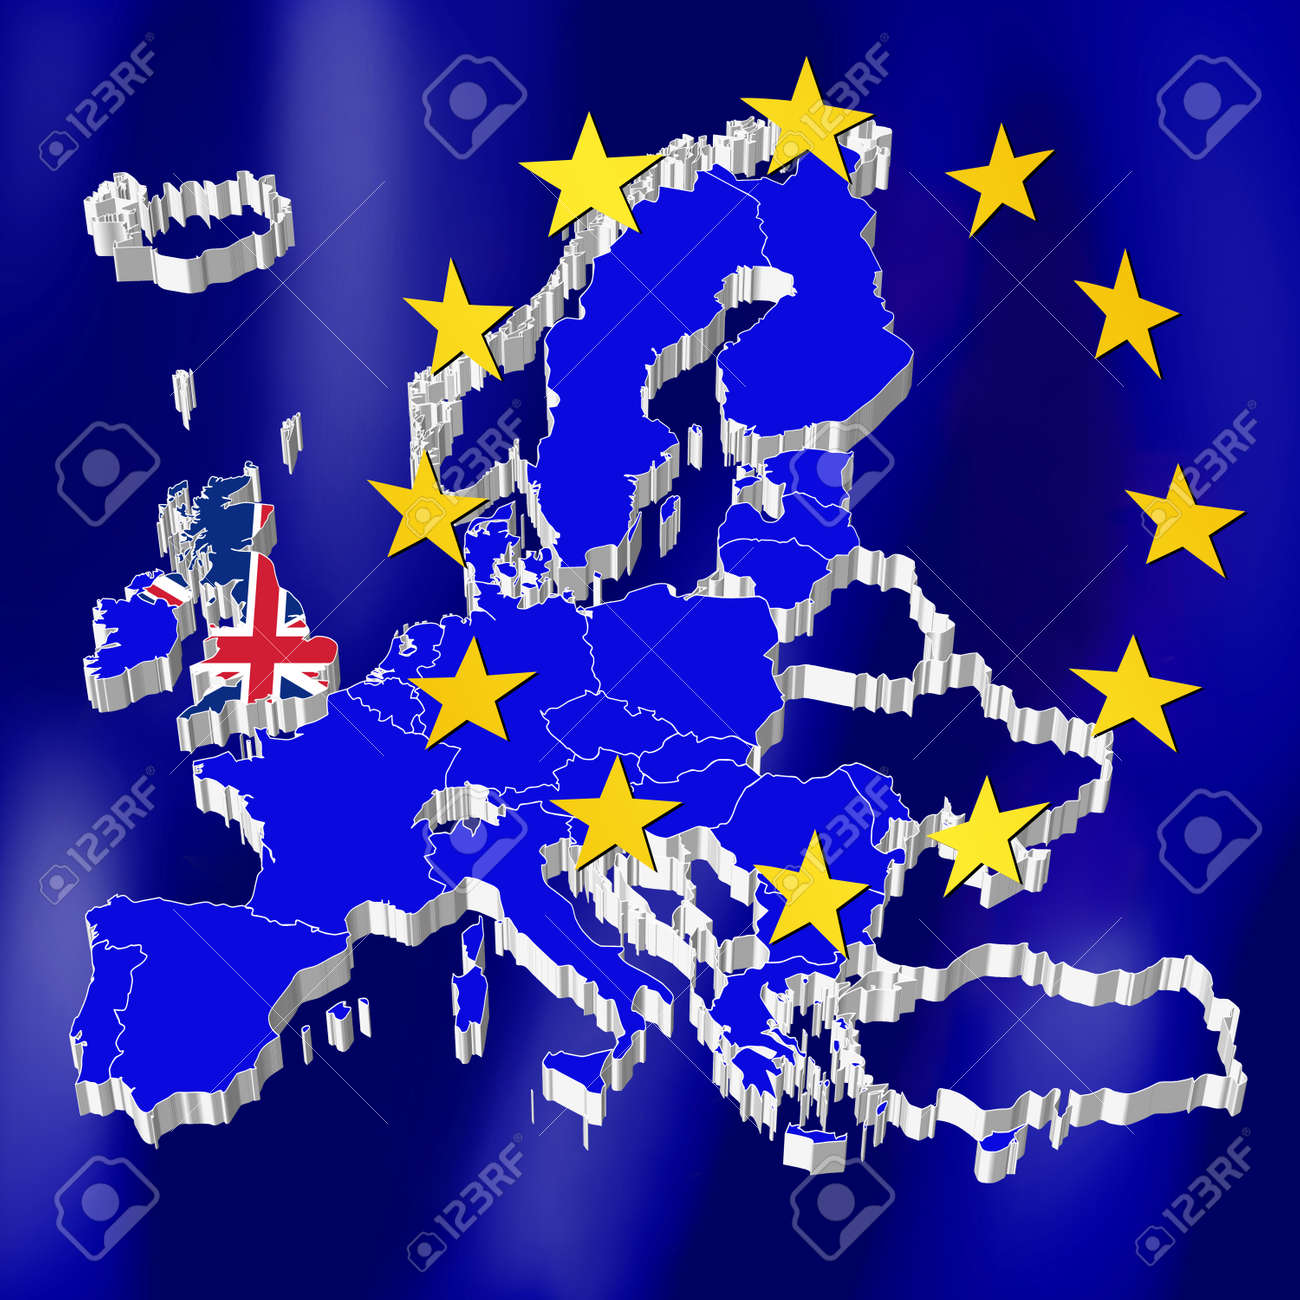 European Union Map - Great Britain Stock Photo, Picture And Royalty ...